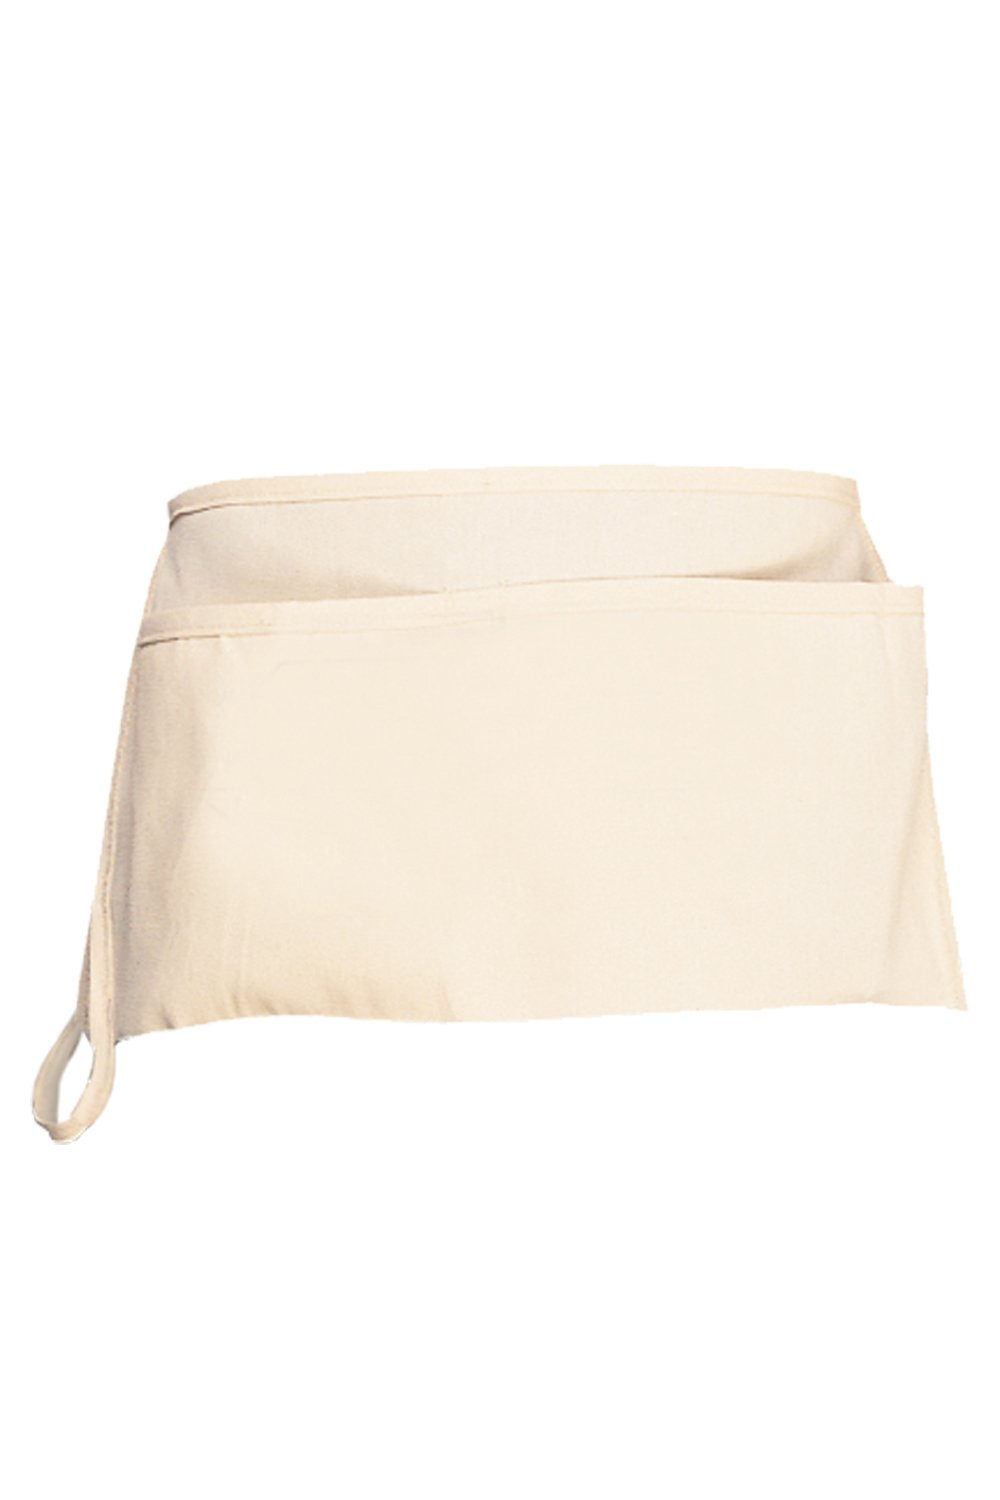 Cotton Duck Canvas Waist Apron (1 Pocket w/ Pencil Pocket)